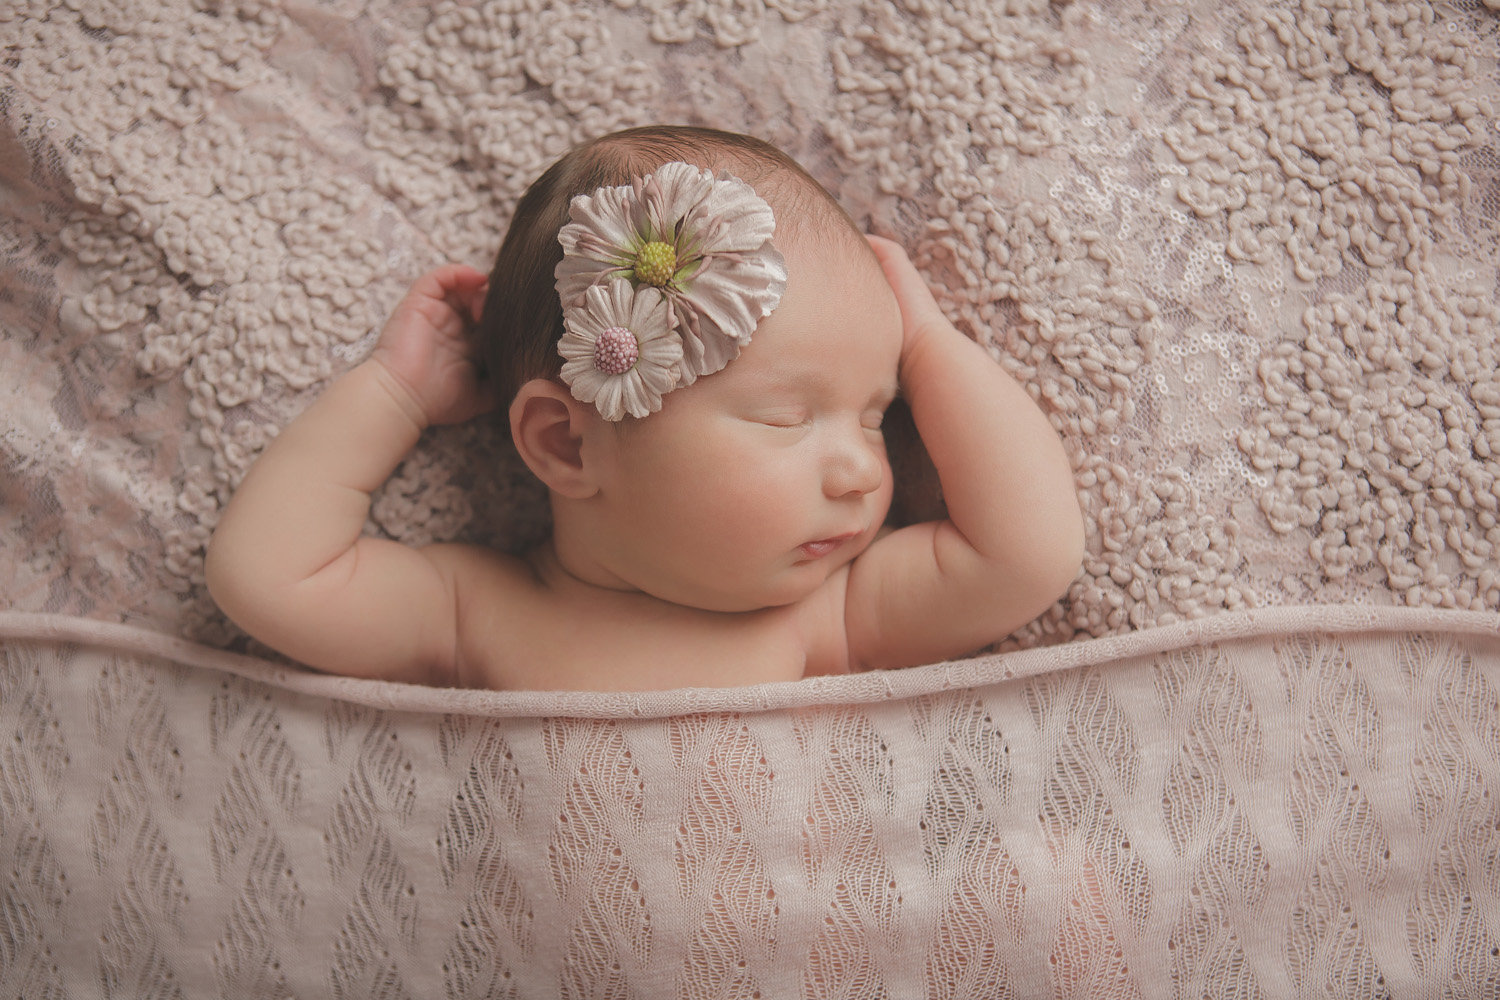 west point Hudson Valley NY newborn baby sleeping in a sweet simple pose by professional photographer in Cornwall NY photo studio